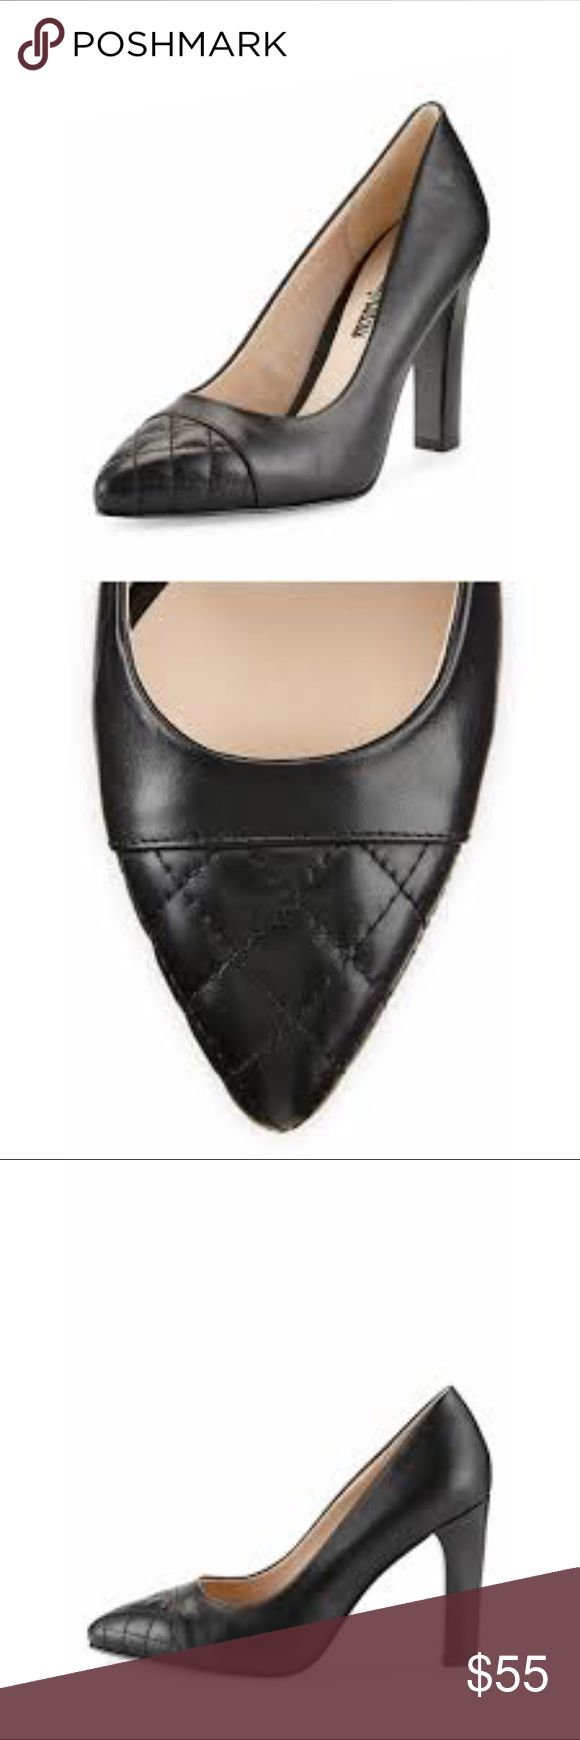 "New Neiman Marcus Quilted Cap-Toe Pump New Neiman Marcus Quilted Cap-Toe Pump. Color is Black. Size 7. Smooth leather pump with pointed, quilted cap-toe. Padded insole. Approx 3 3/4"" stacked heel. Never been worn. Final sale. Neiman Marcus Shoes Heels"